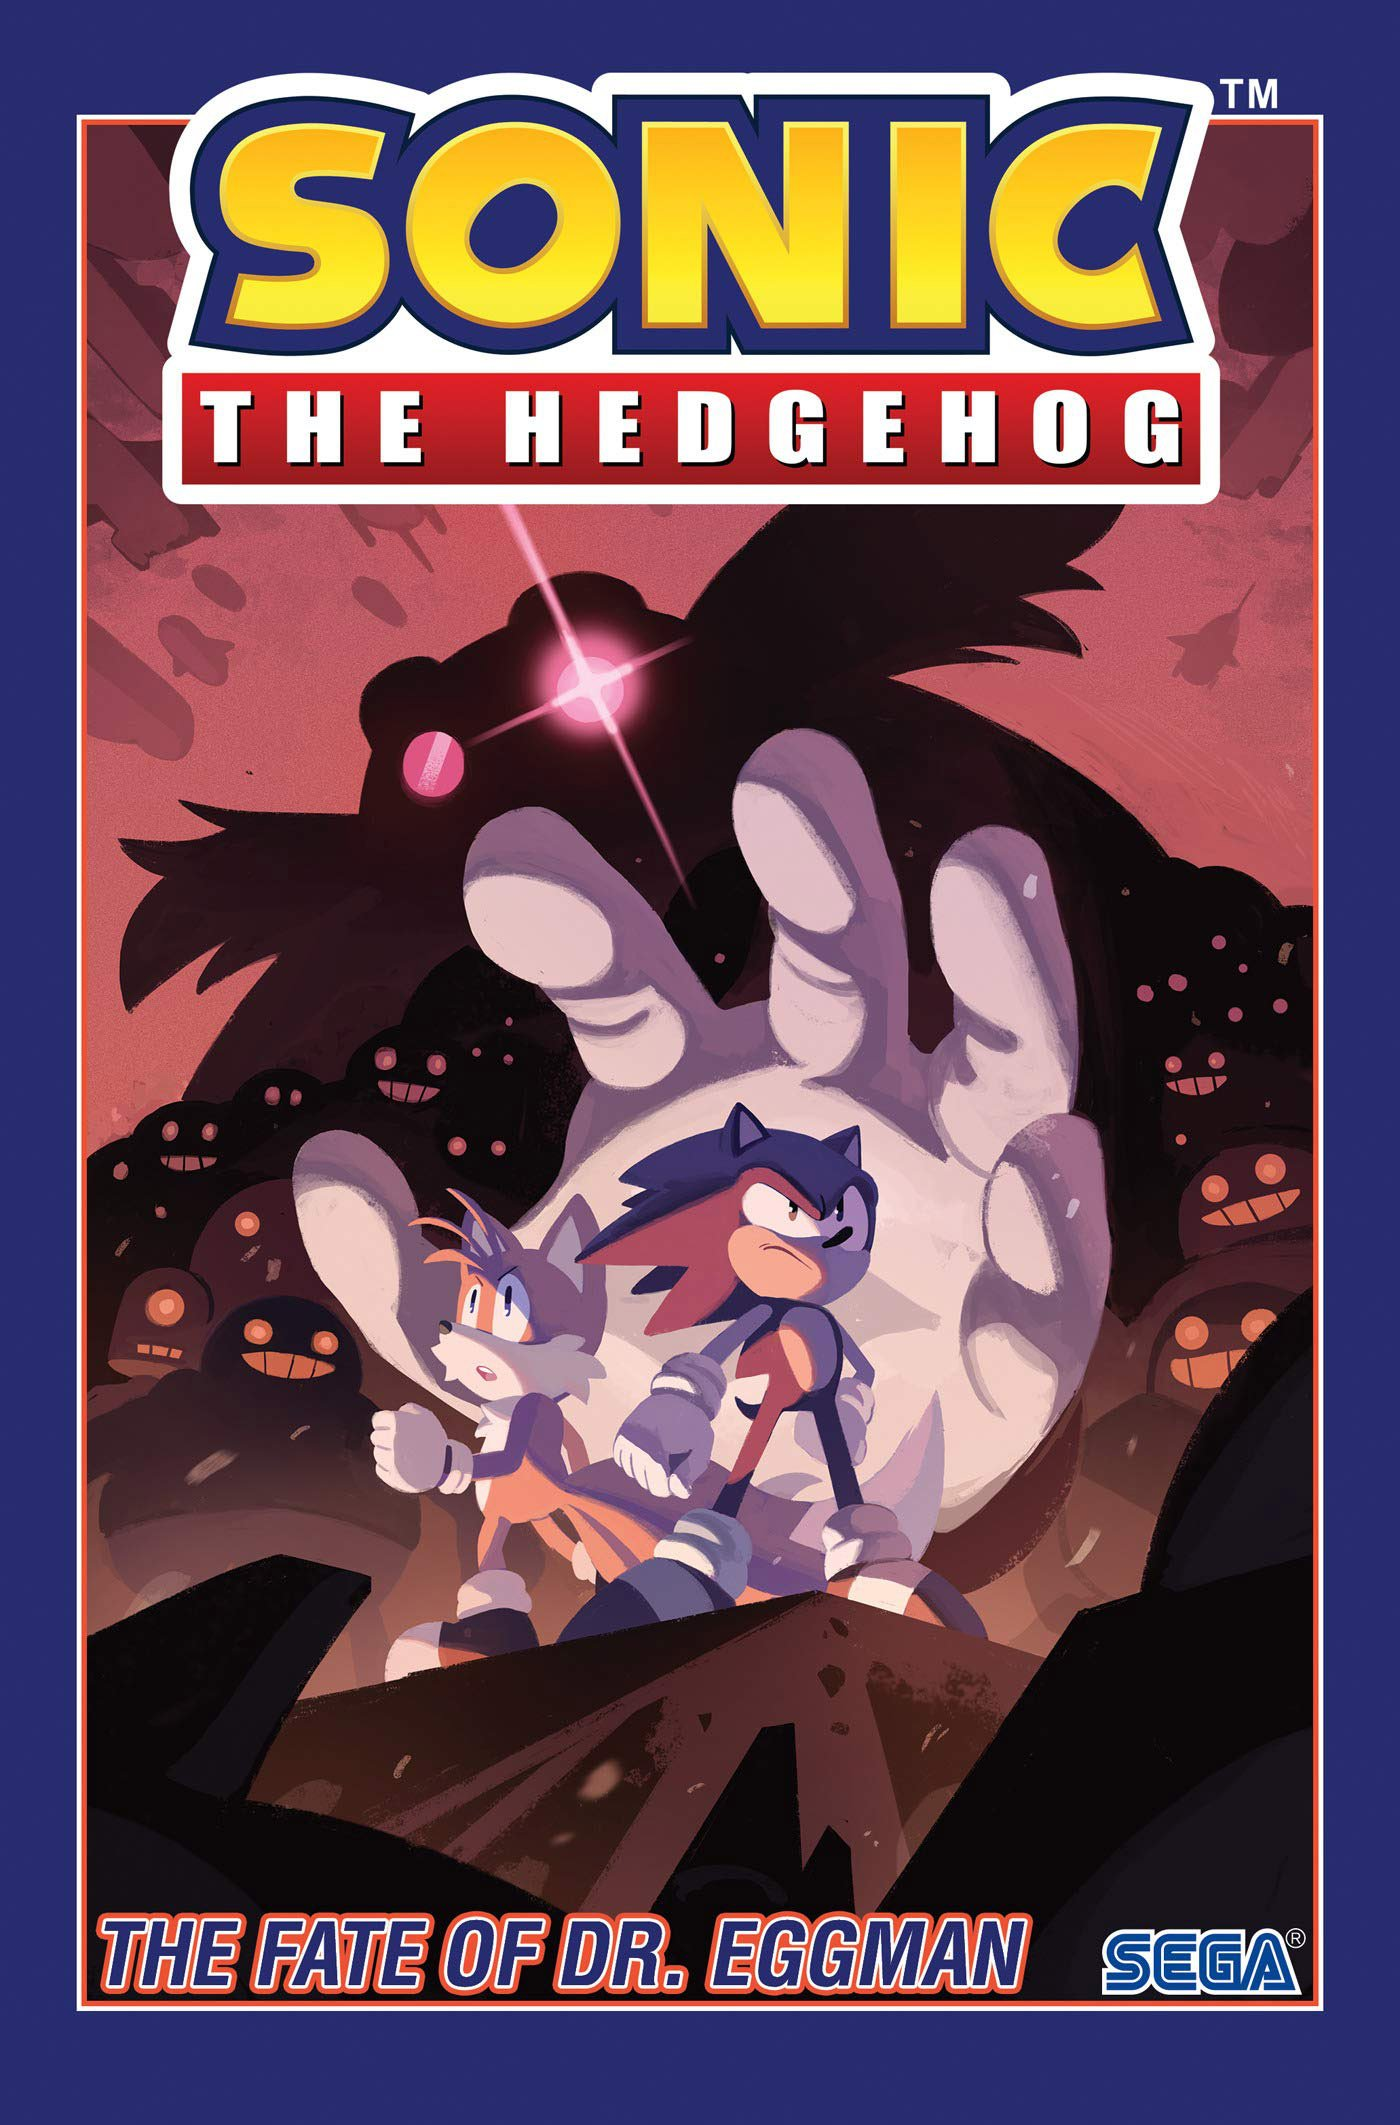 Sonic the Hedgehog Vol.2: The Fate of Dr. Eggman